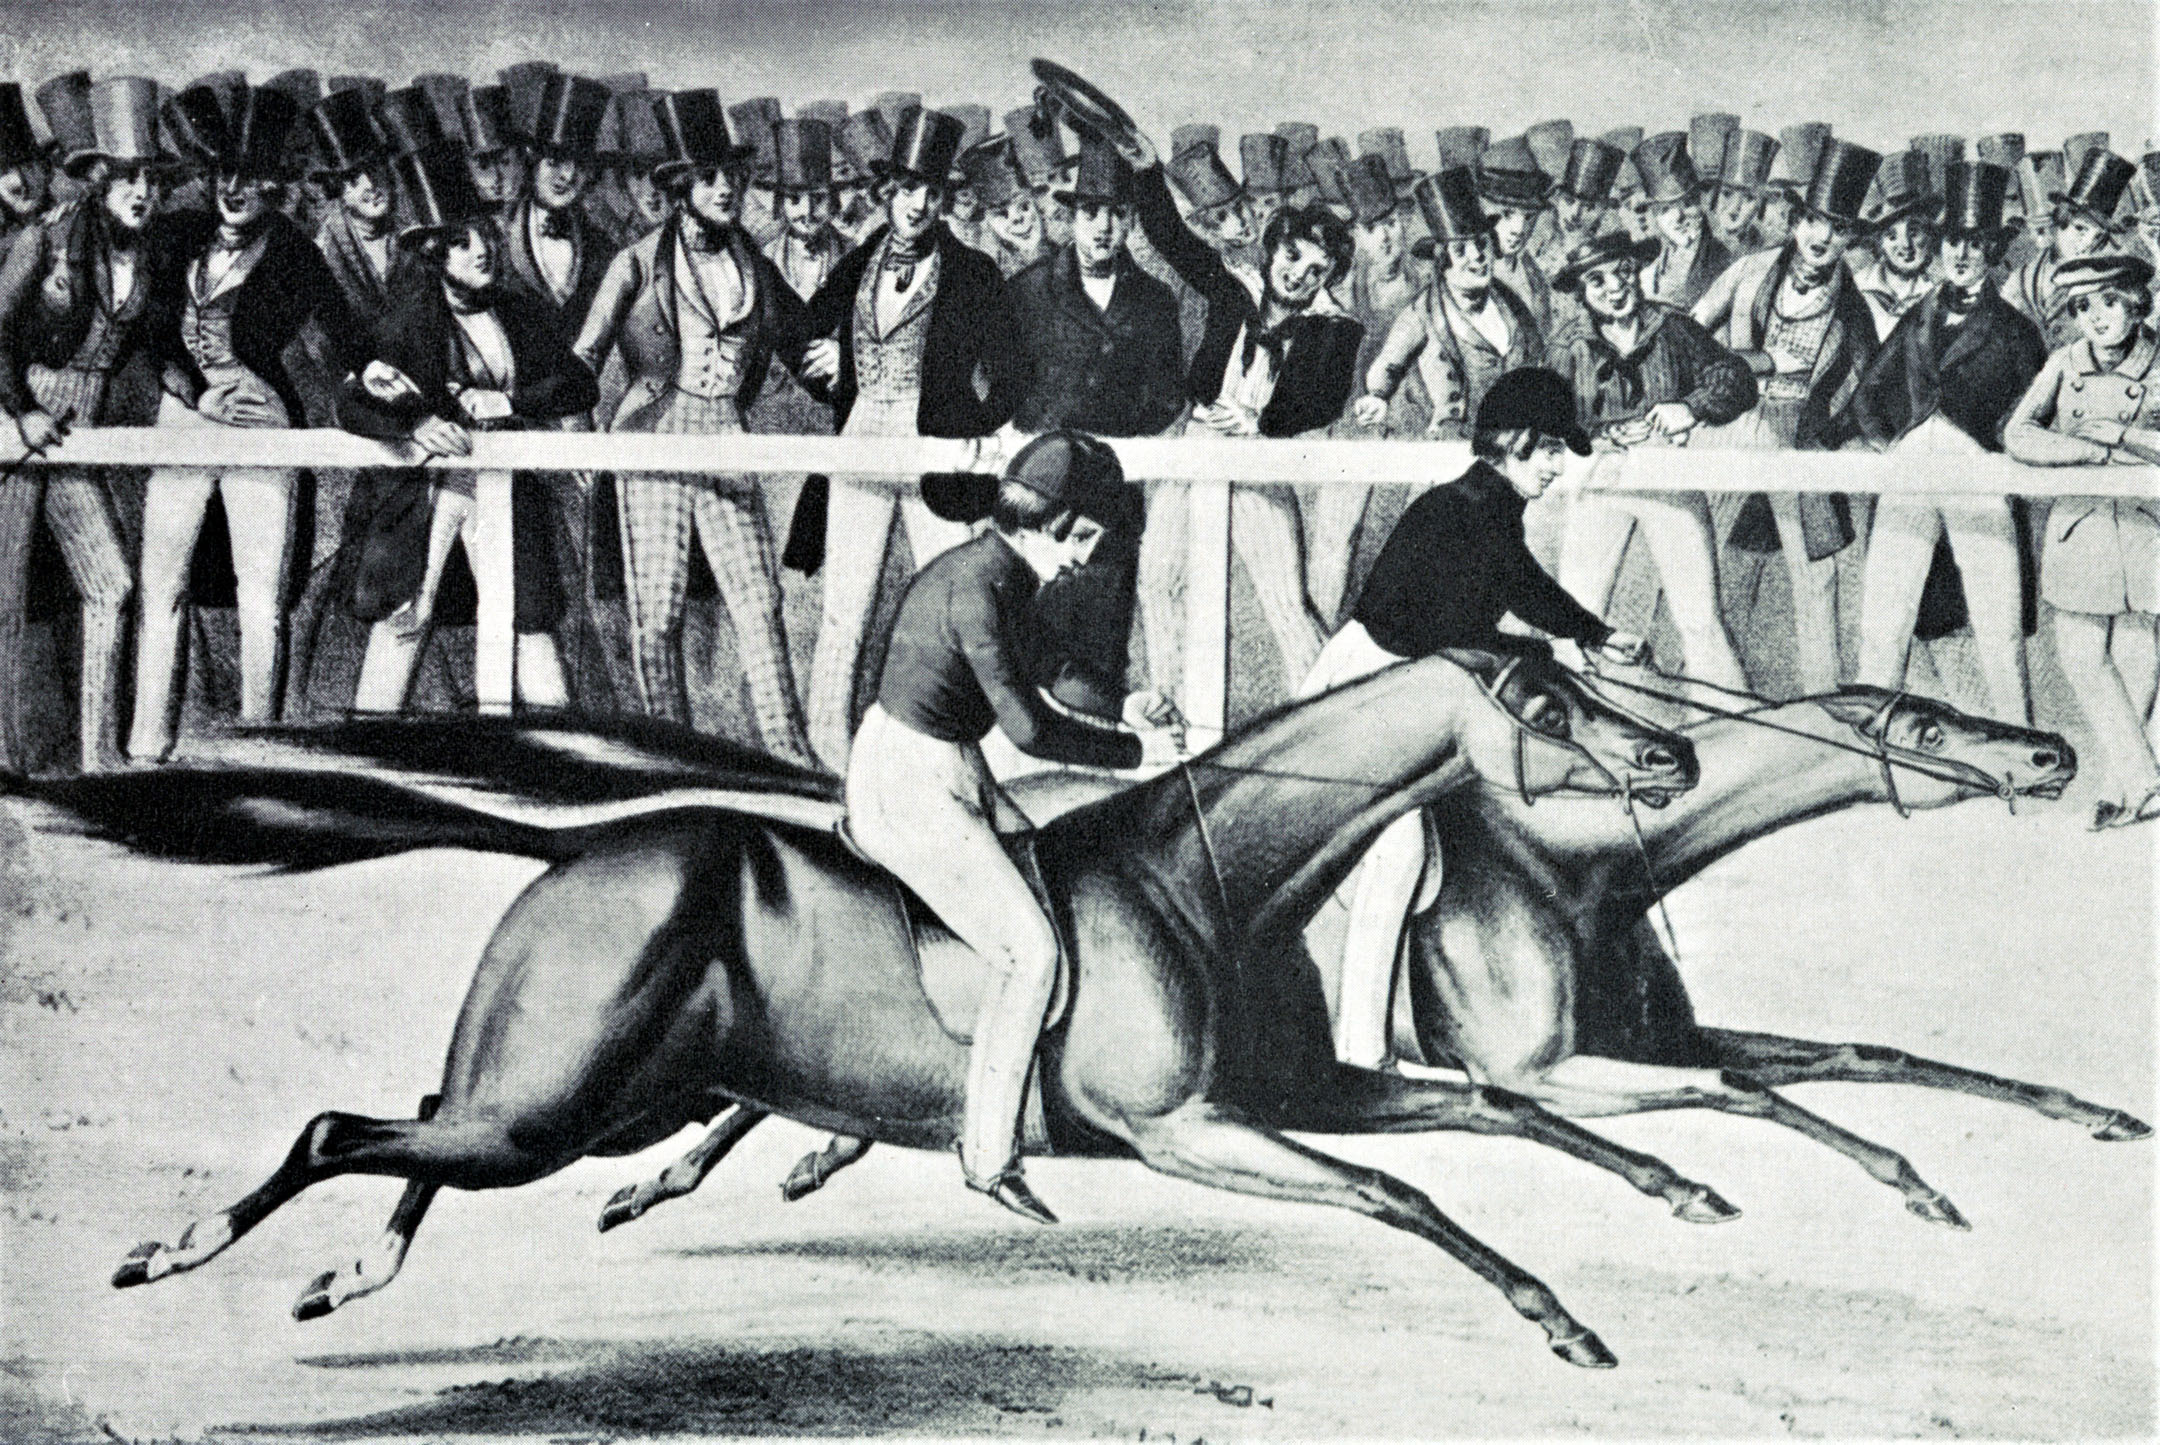 """An illustration from Hervey's """"Racing in America"""" depicting Gilbert W. Patrick (Gilpatrick) and Boston defeating Fashion at the Union Course match race on May 10, 1842 (Keeneland Library Collection/Museum Collection)"""